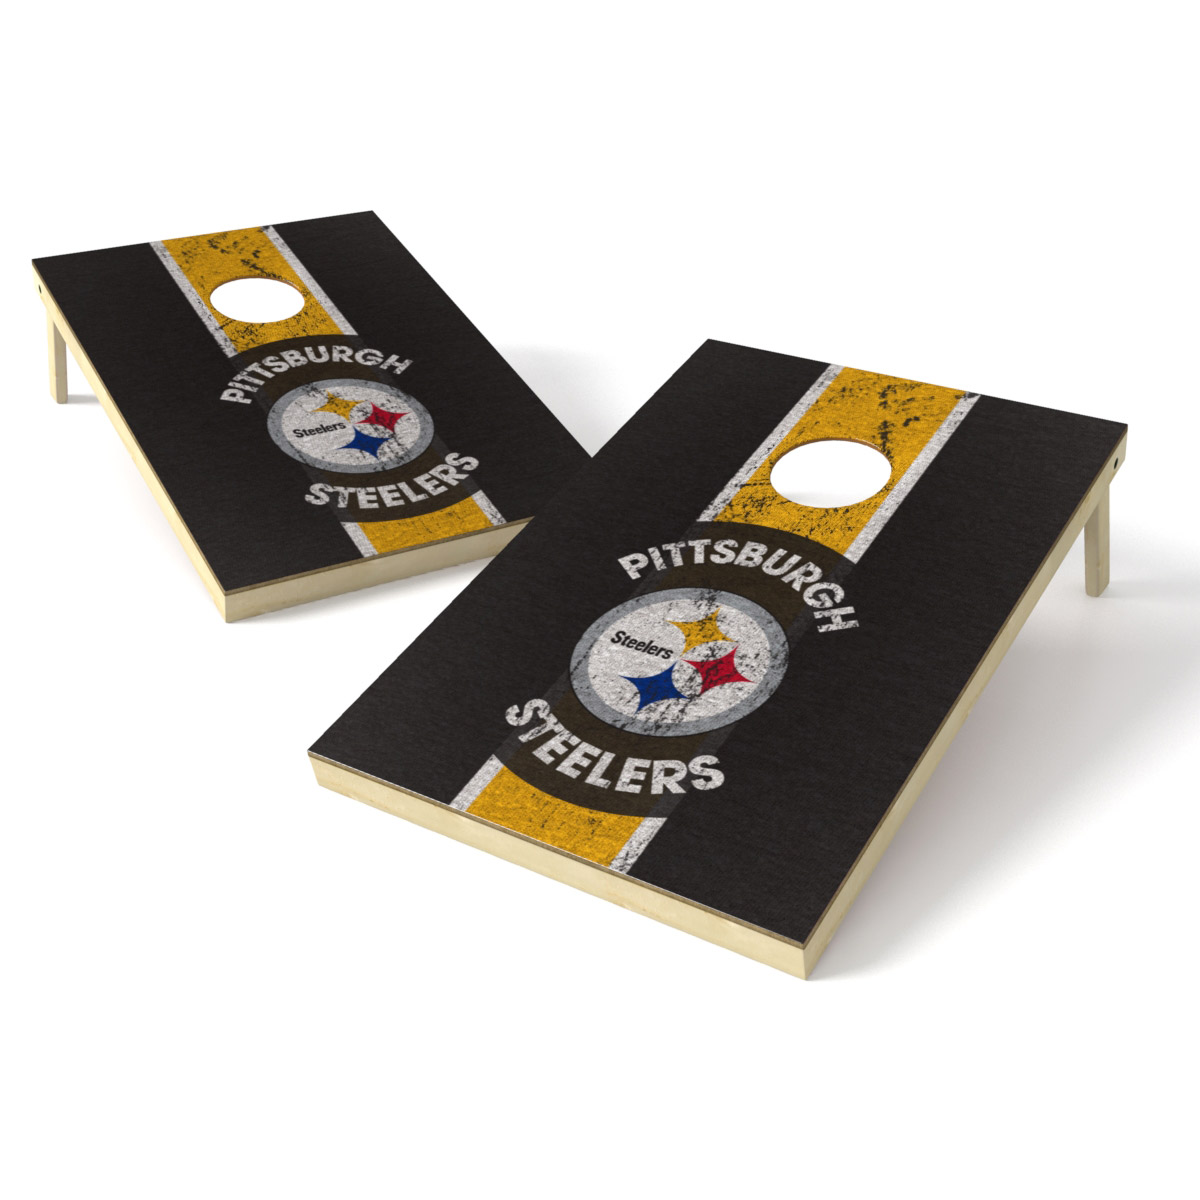 2x3 Shield Game NFL Steelers